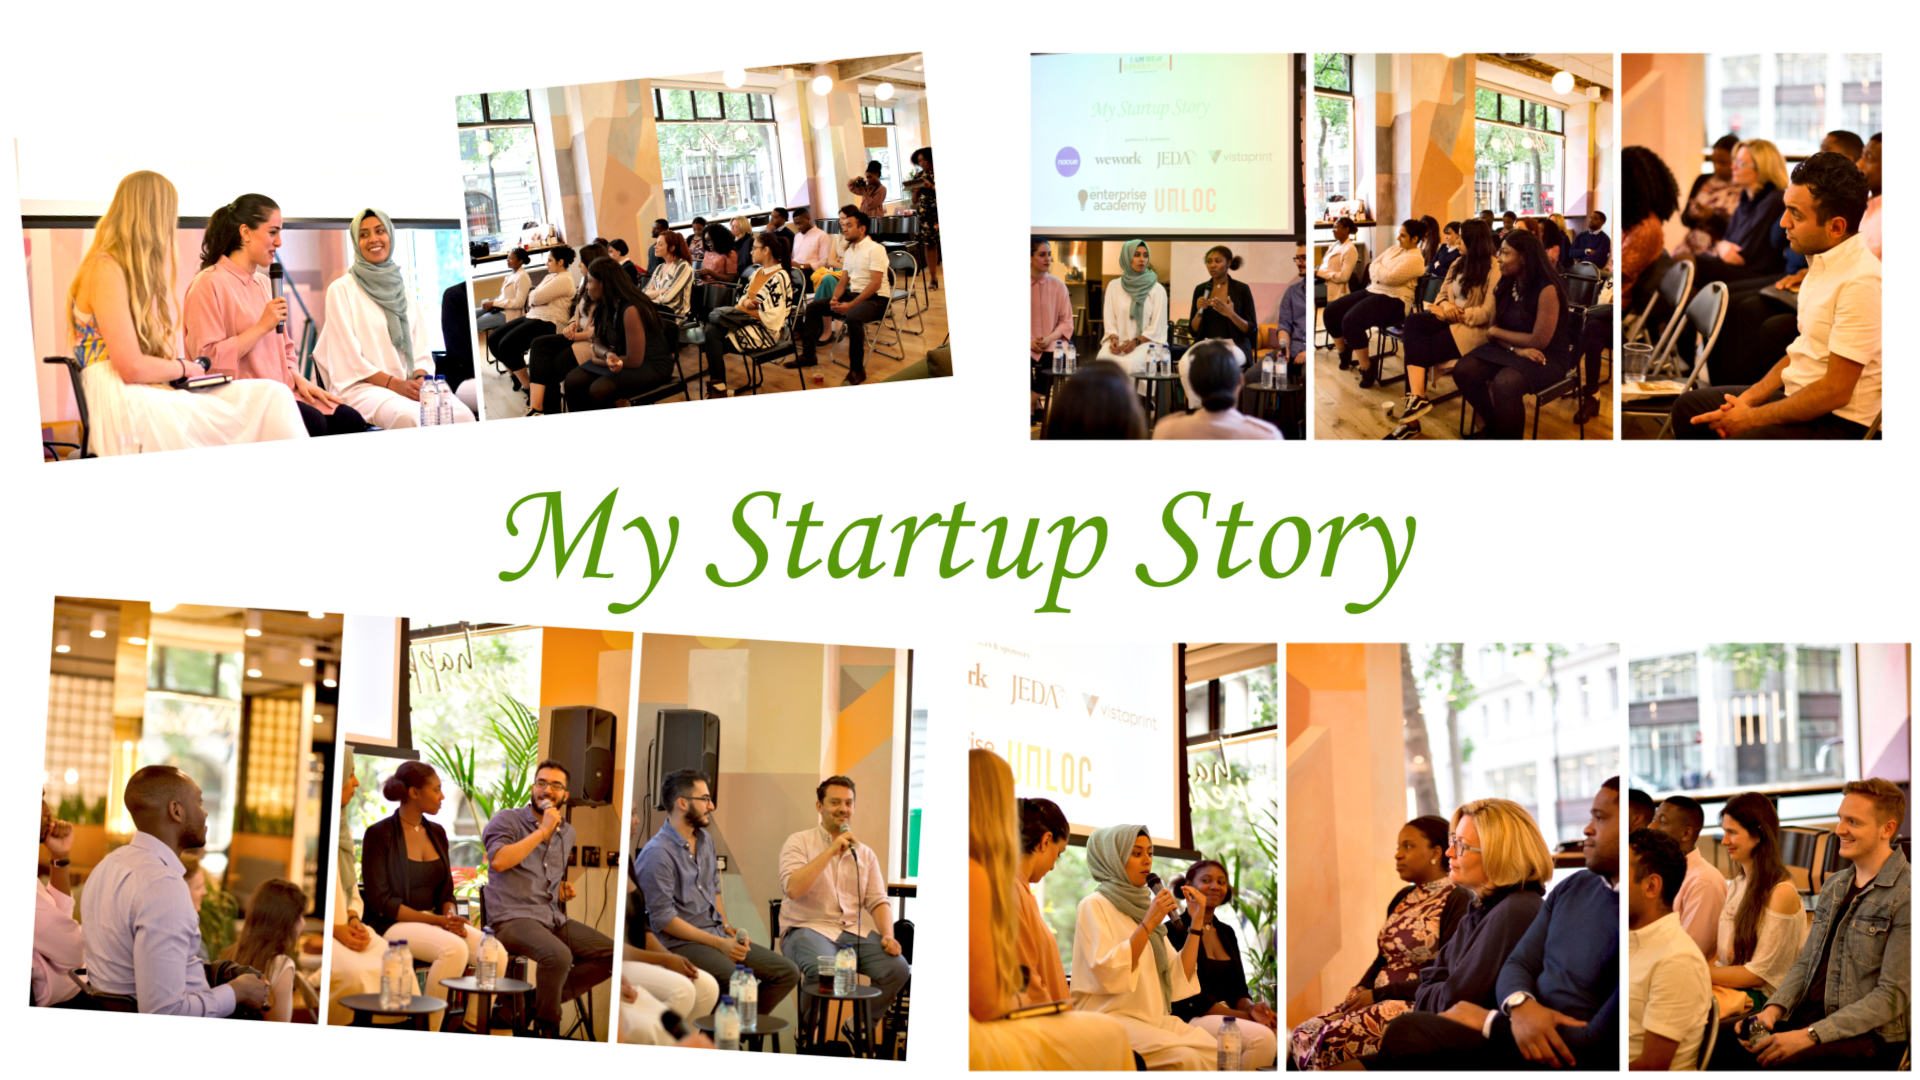 My Startup Story